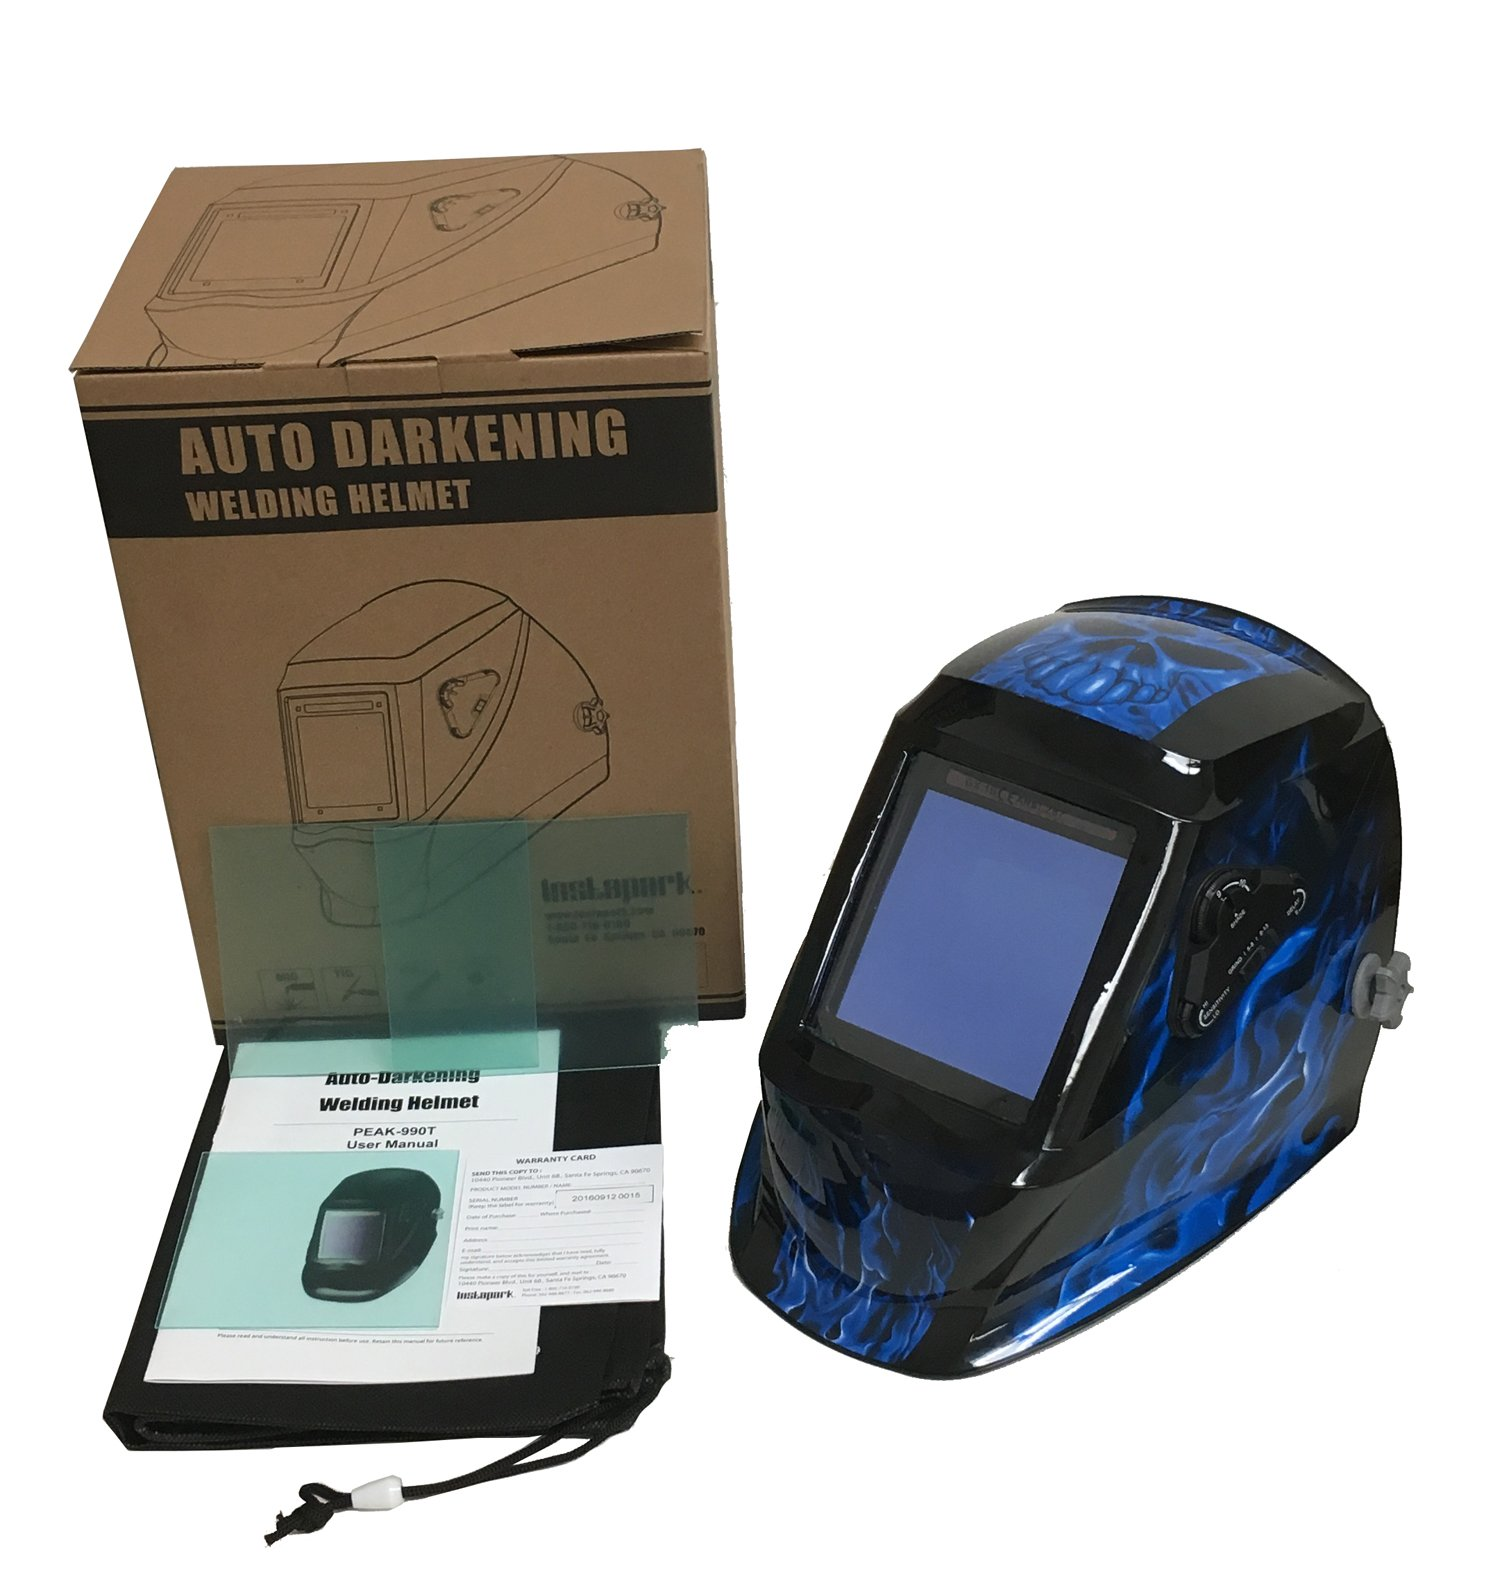 Instapark ADF Series GX990T Solar Powered Auto Darkening Welding Helmet with 4 Optical Sensors, 3.94'' X 3.86'' Viewing Area and Adjustable Shade Range #5 - #13 Bluish Devil by Instapark (Image #5)